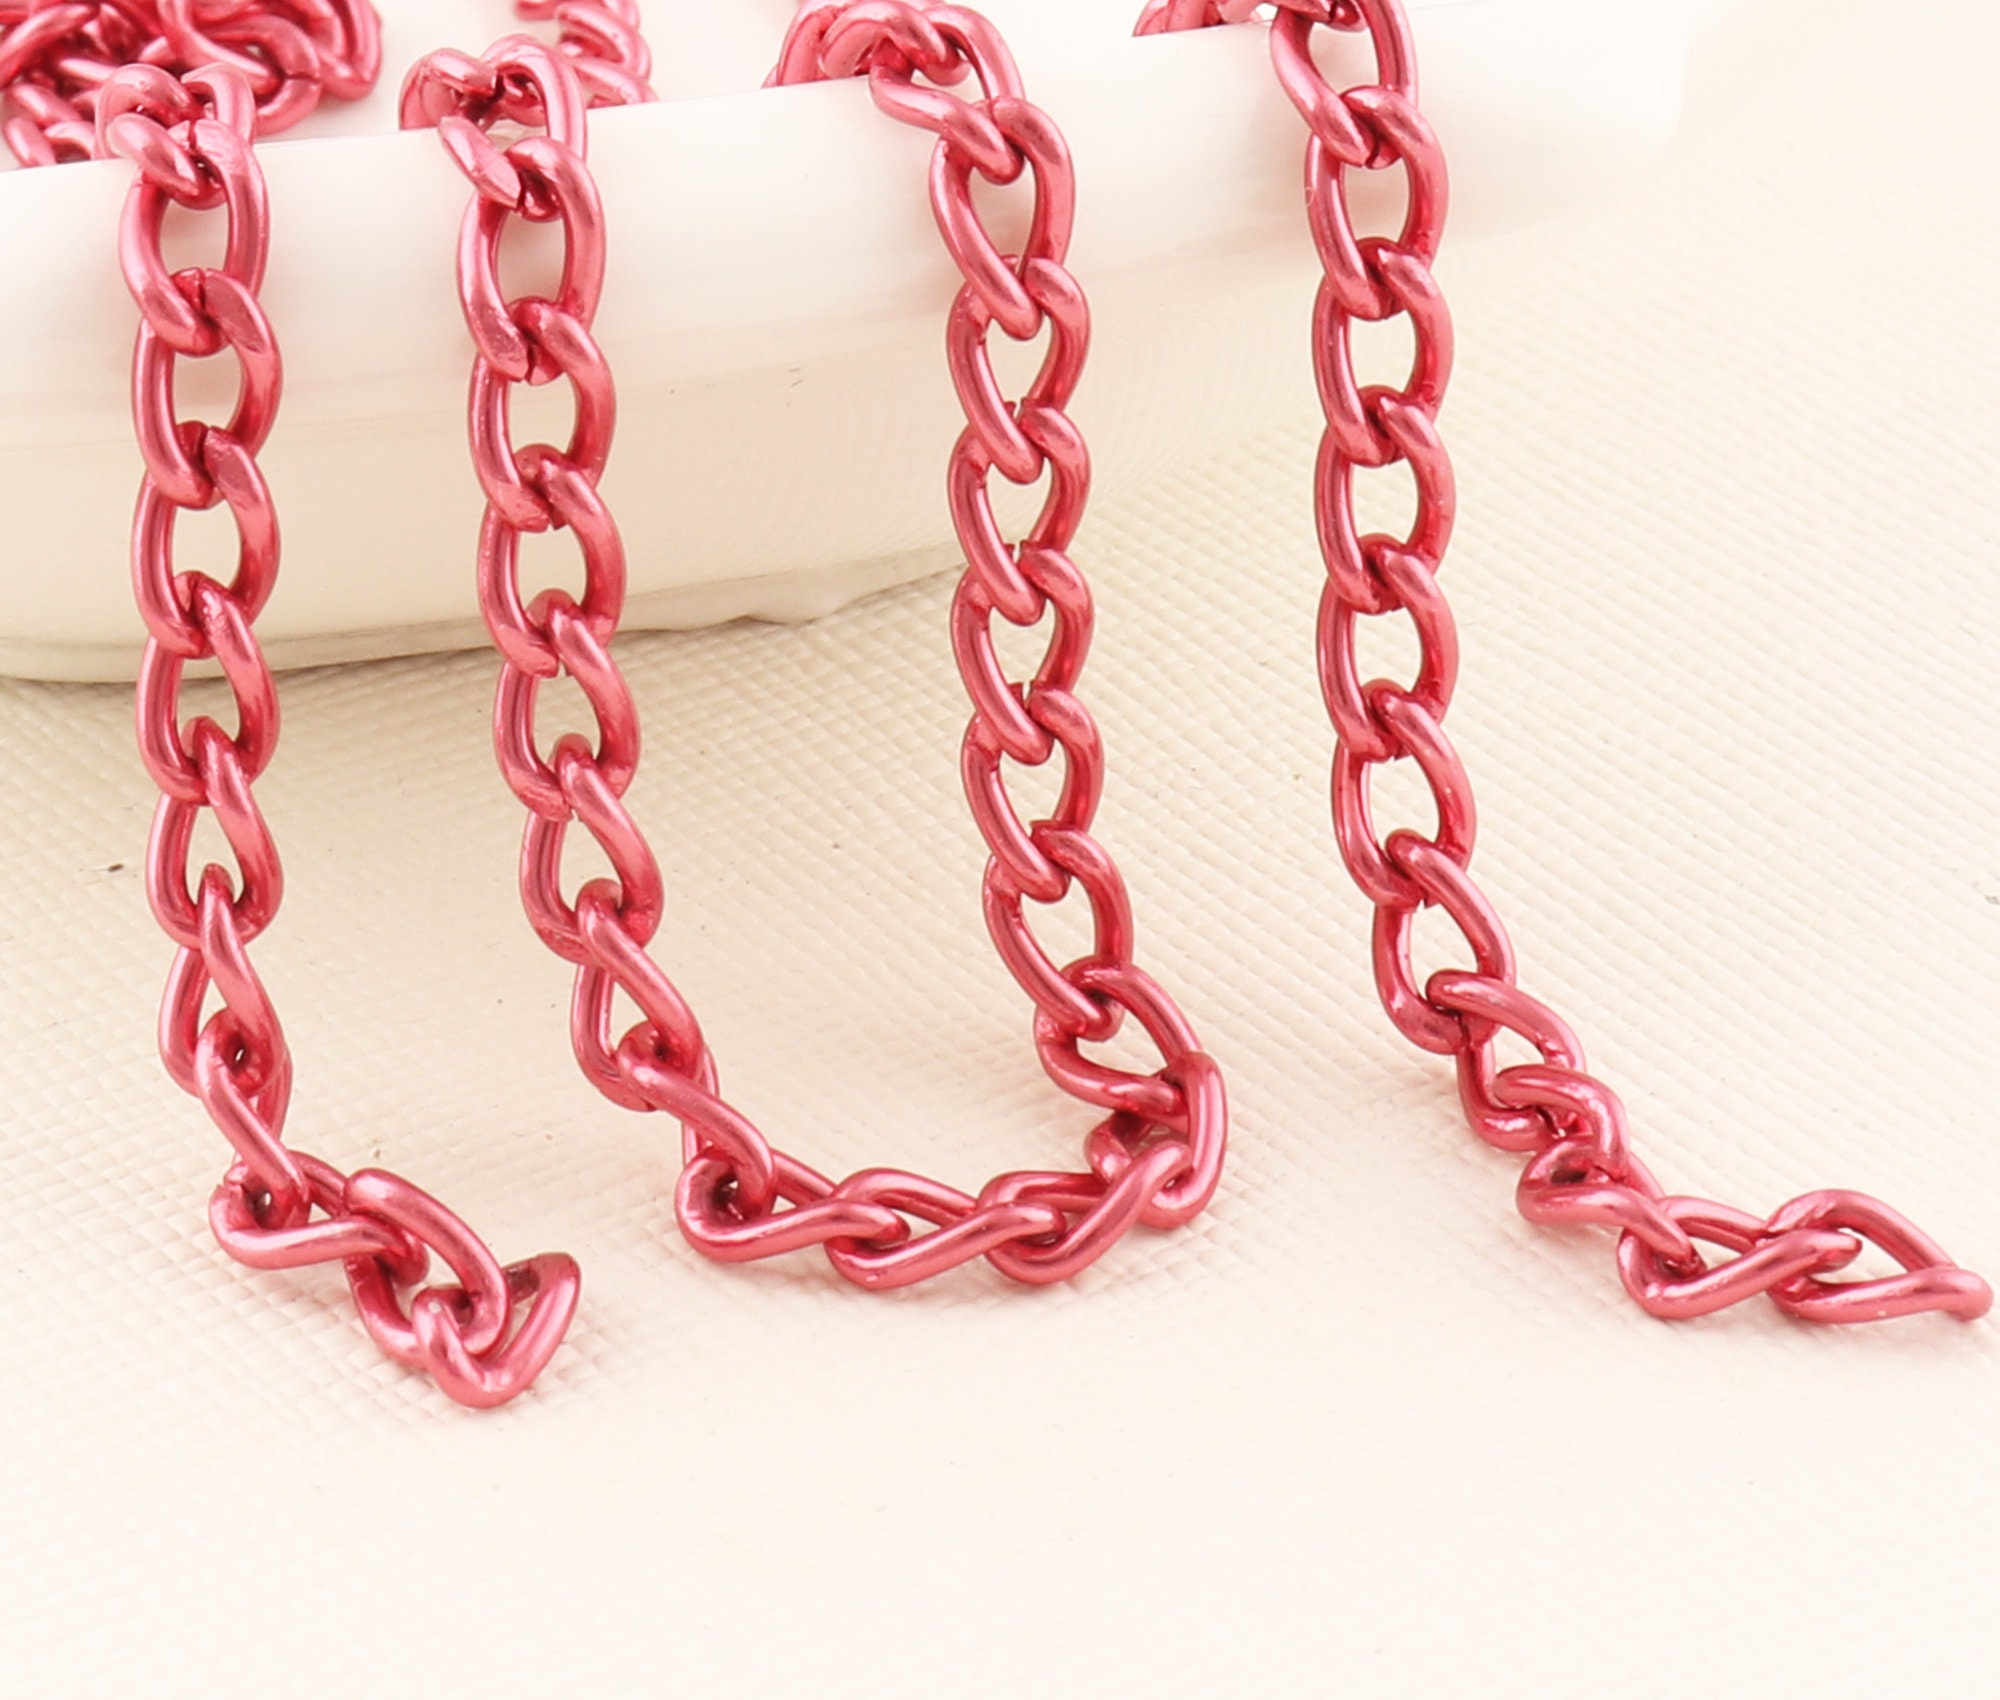 20 FEET Purse Replacement Chains Red bag chain Wallet c